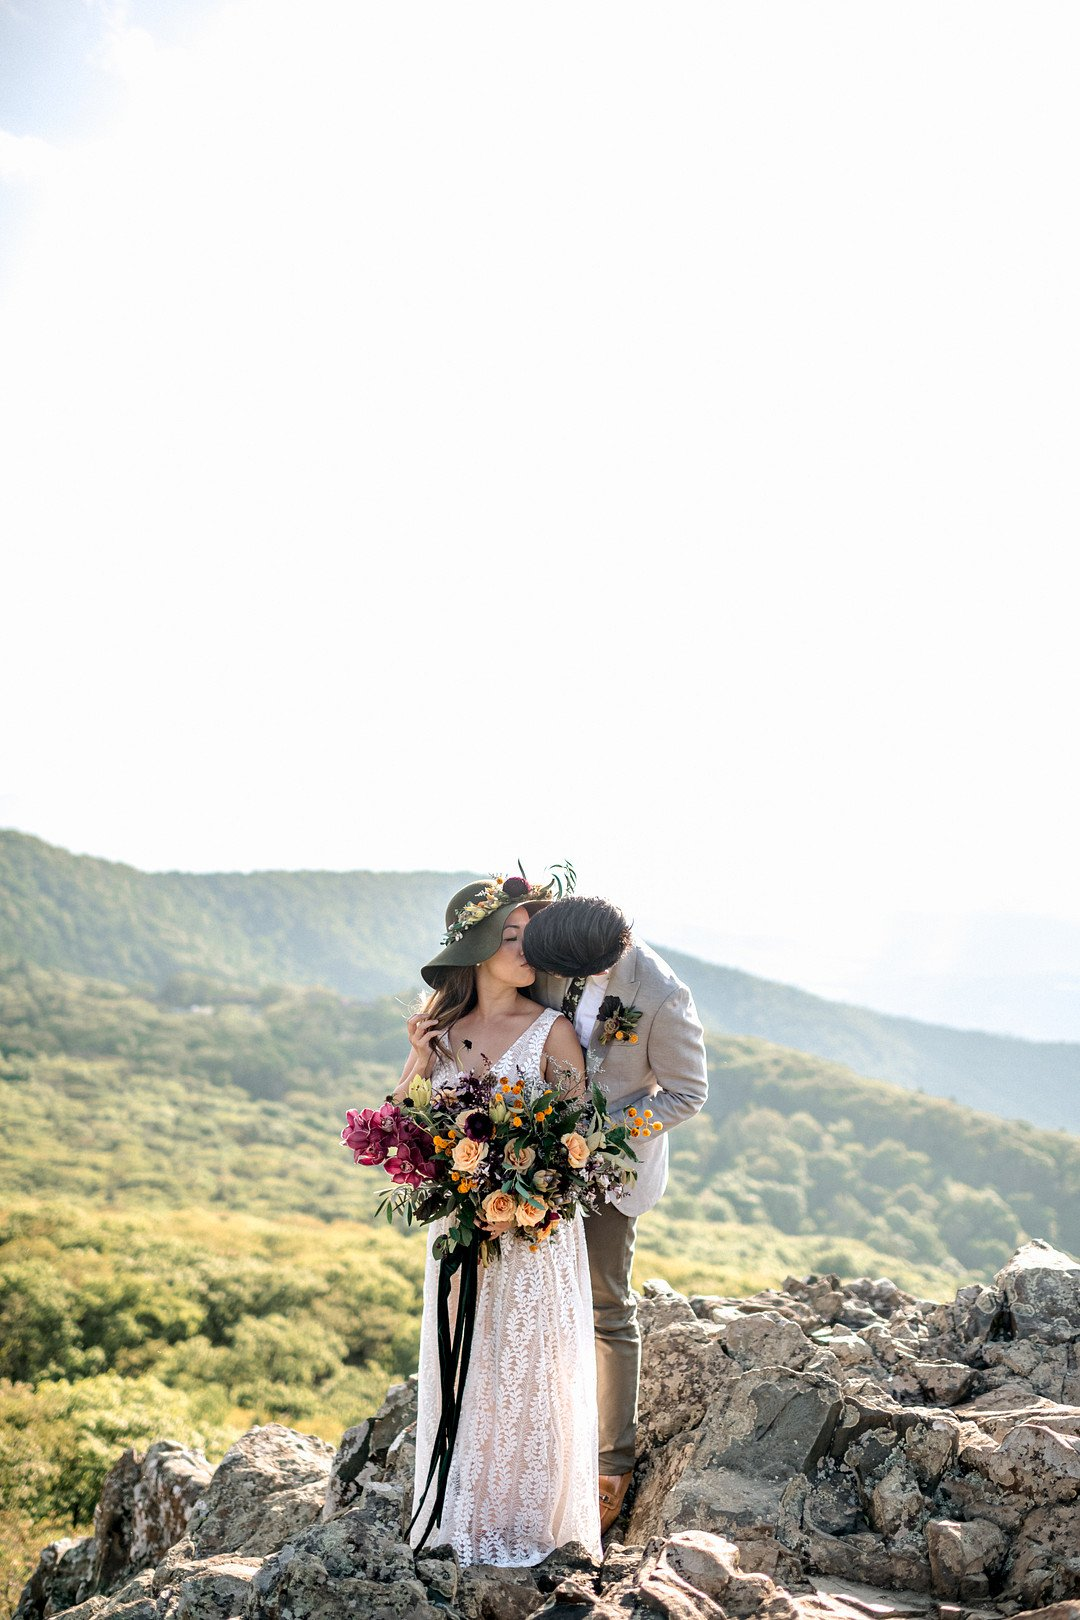 Boho Mountain Elopement in Shenandoah National Park_1001 Angles Photography_Shenandoah National Park Adventure Elopement-110_low